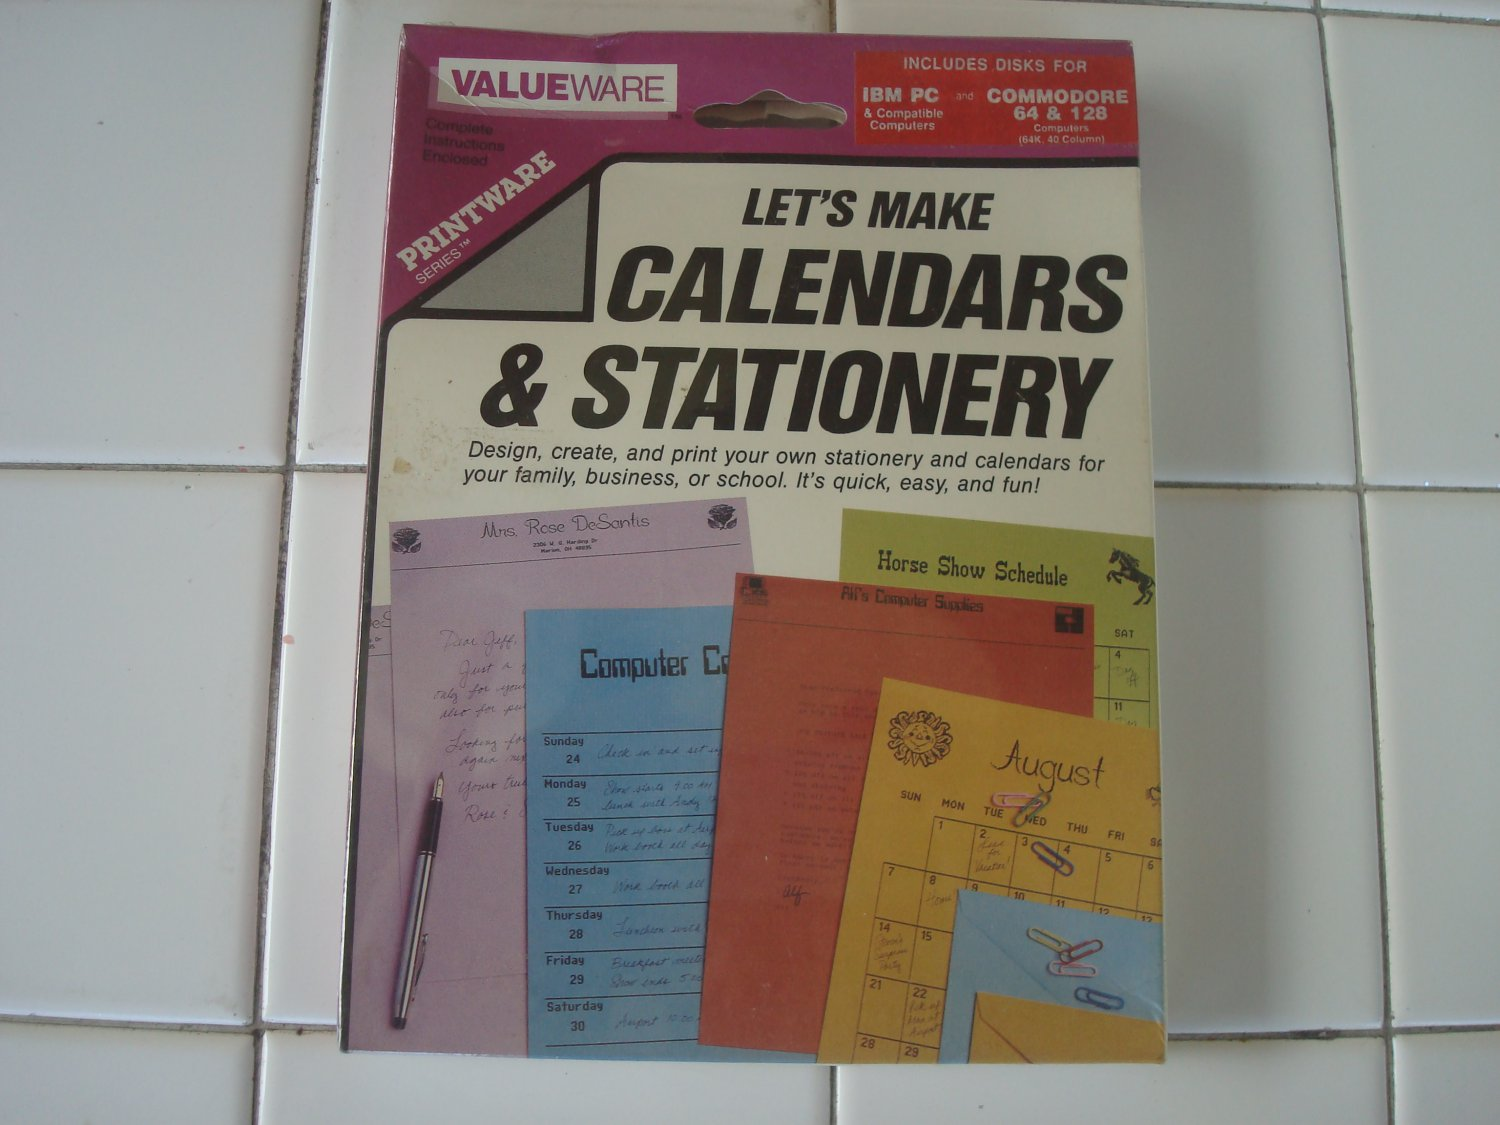 Calendars & Stationary For IBM PC *AND* Commodore 64/128, NEW FACTORY SEALED